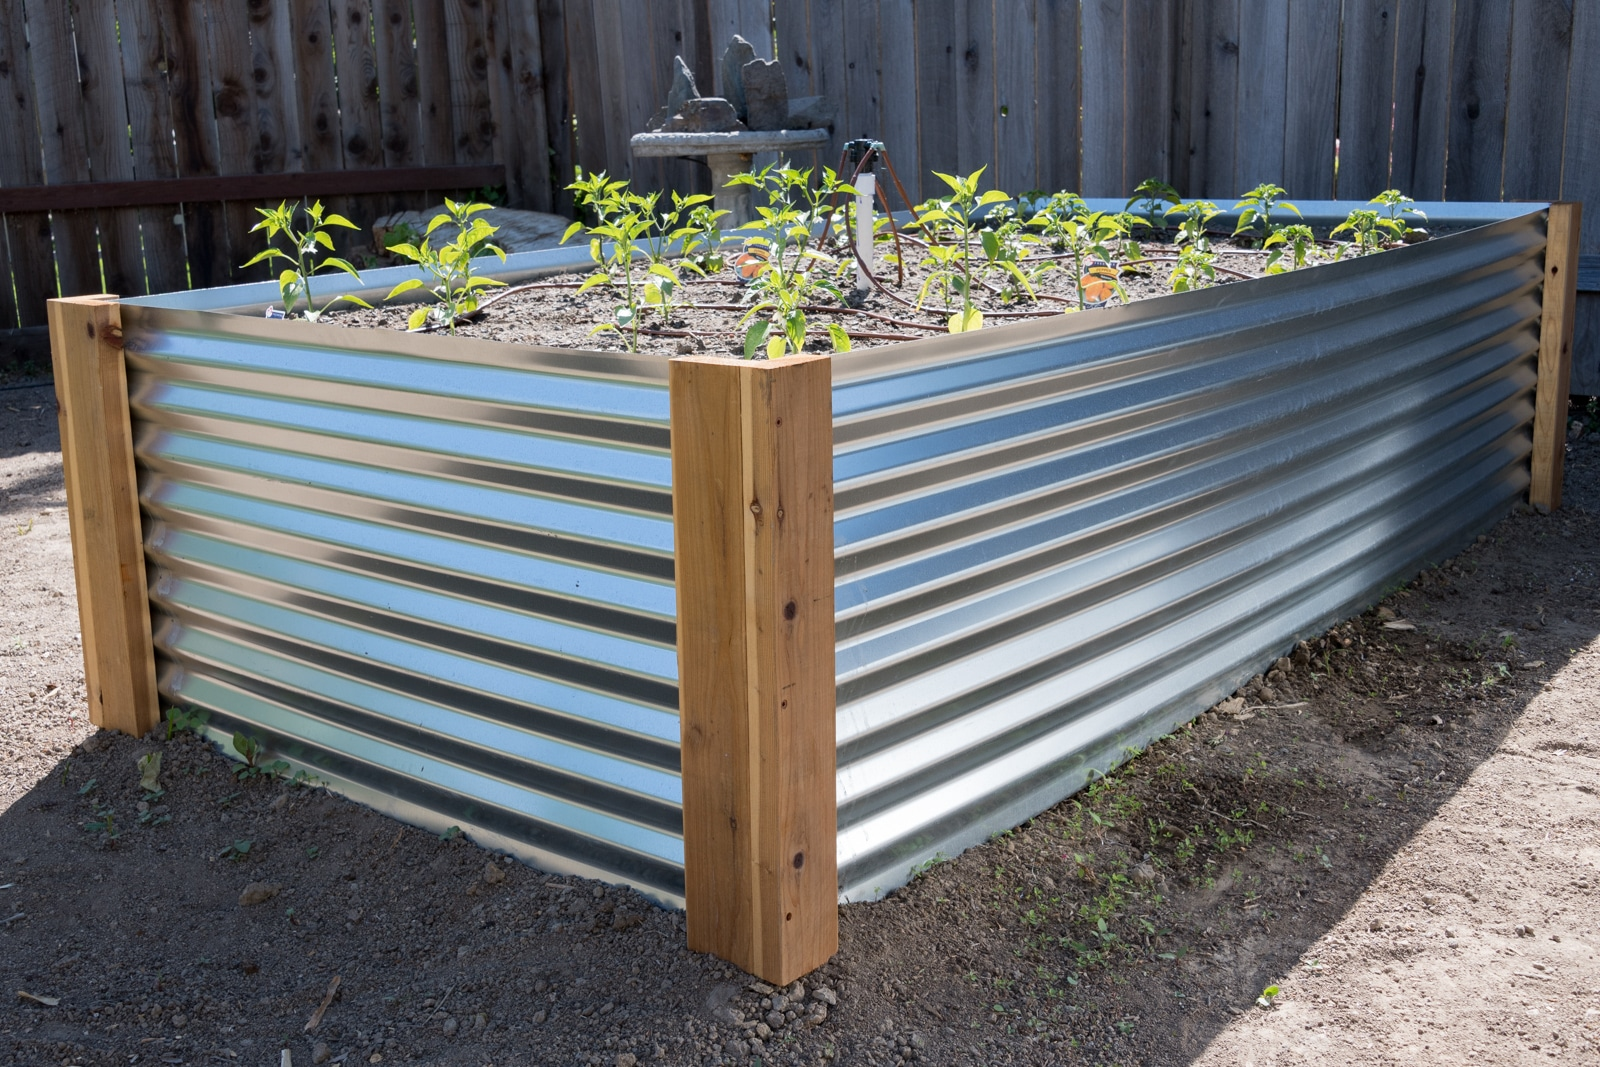 Corrugated Metal Raised Beds for the Garden